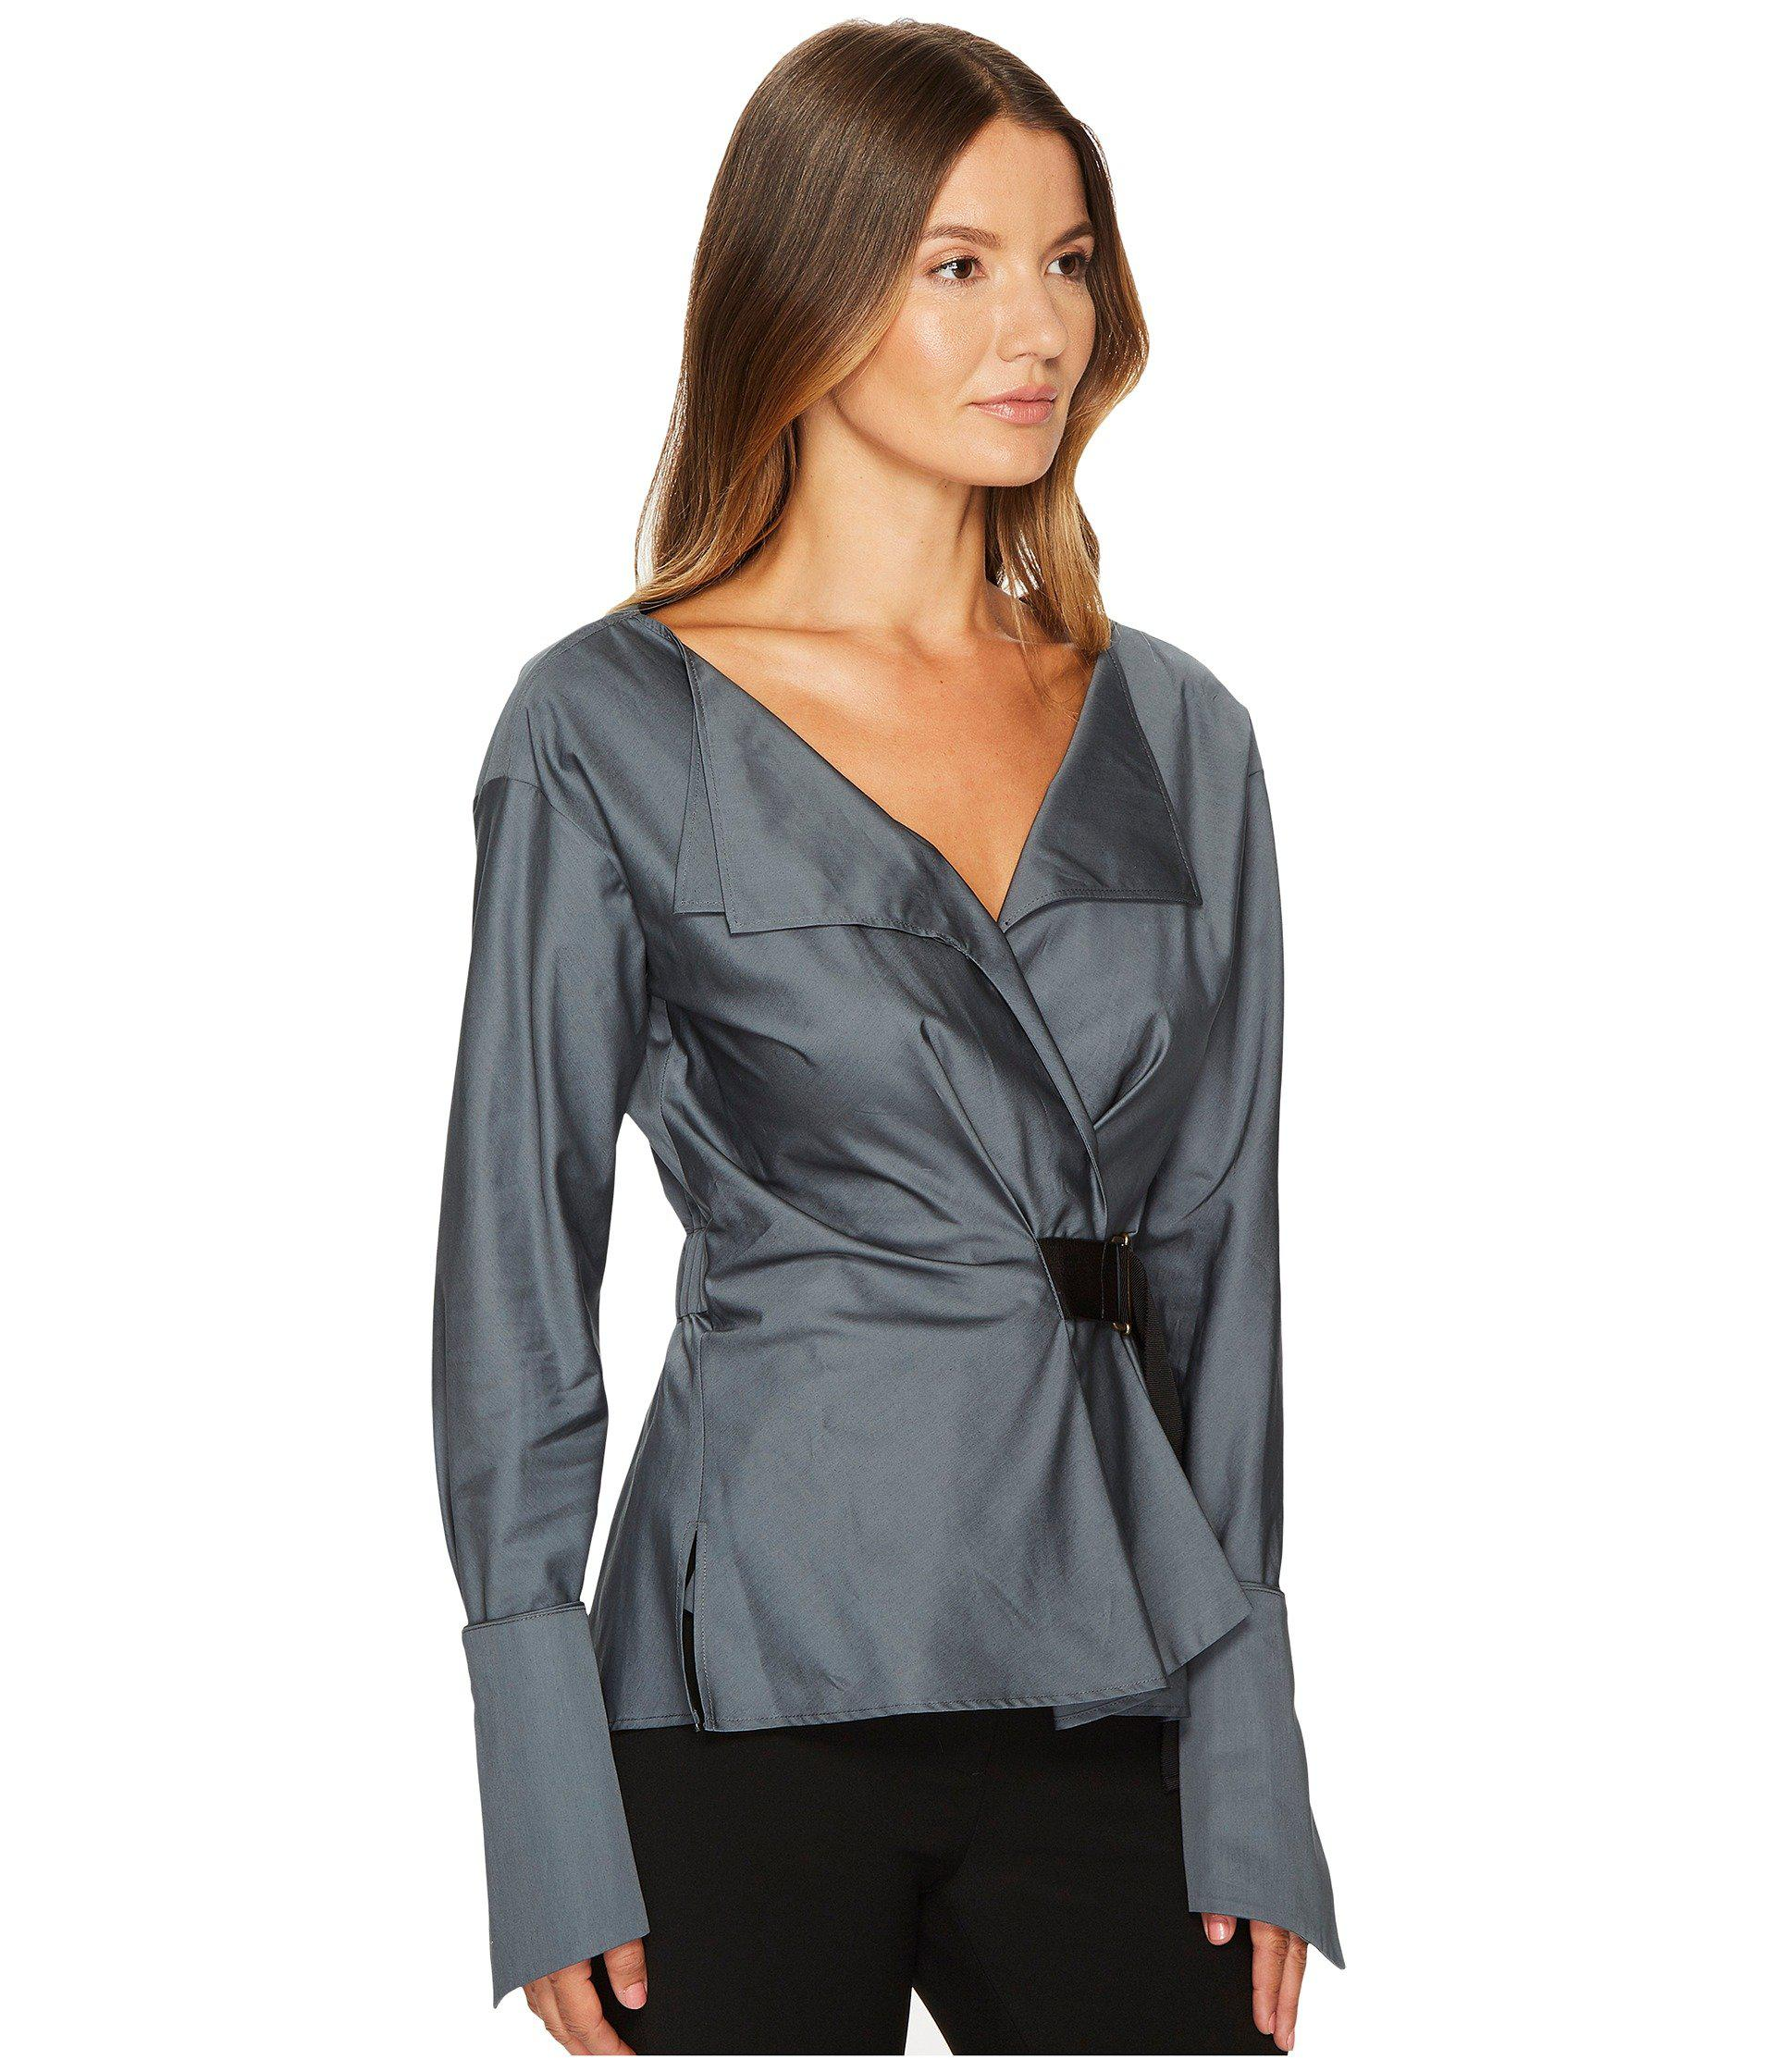 b52f757a9c Satin Deep V Neck Blouse - Joe Maloy